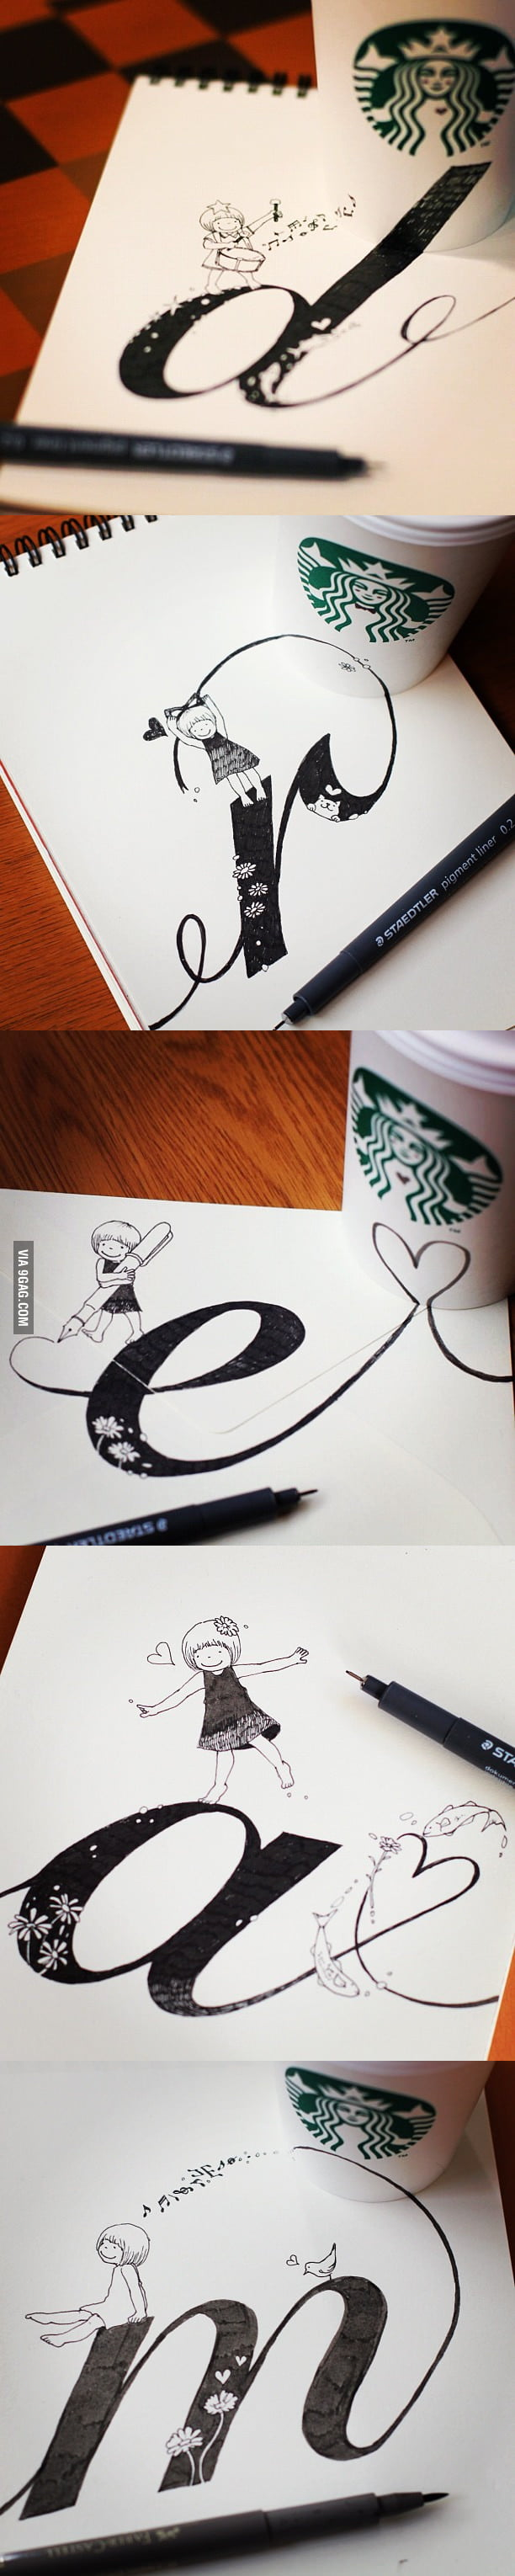 Starbucks Art: Dream